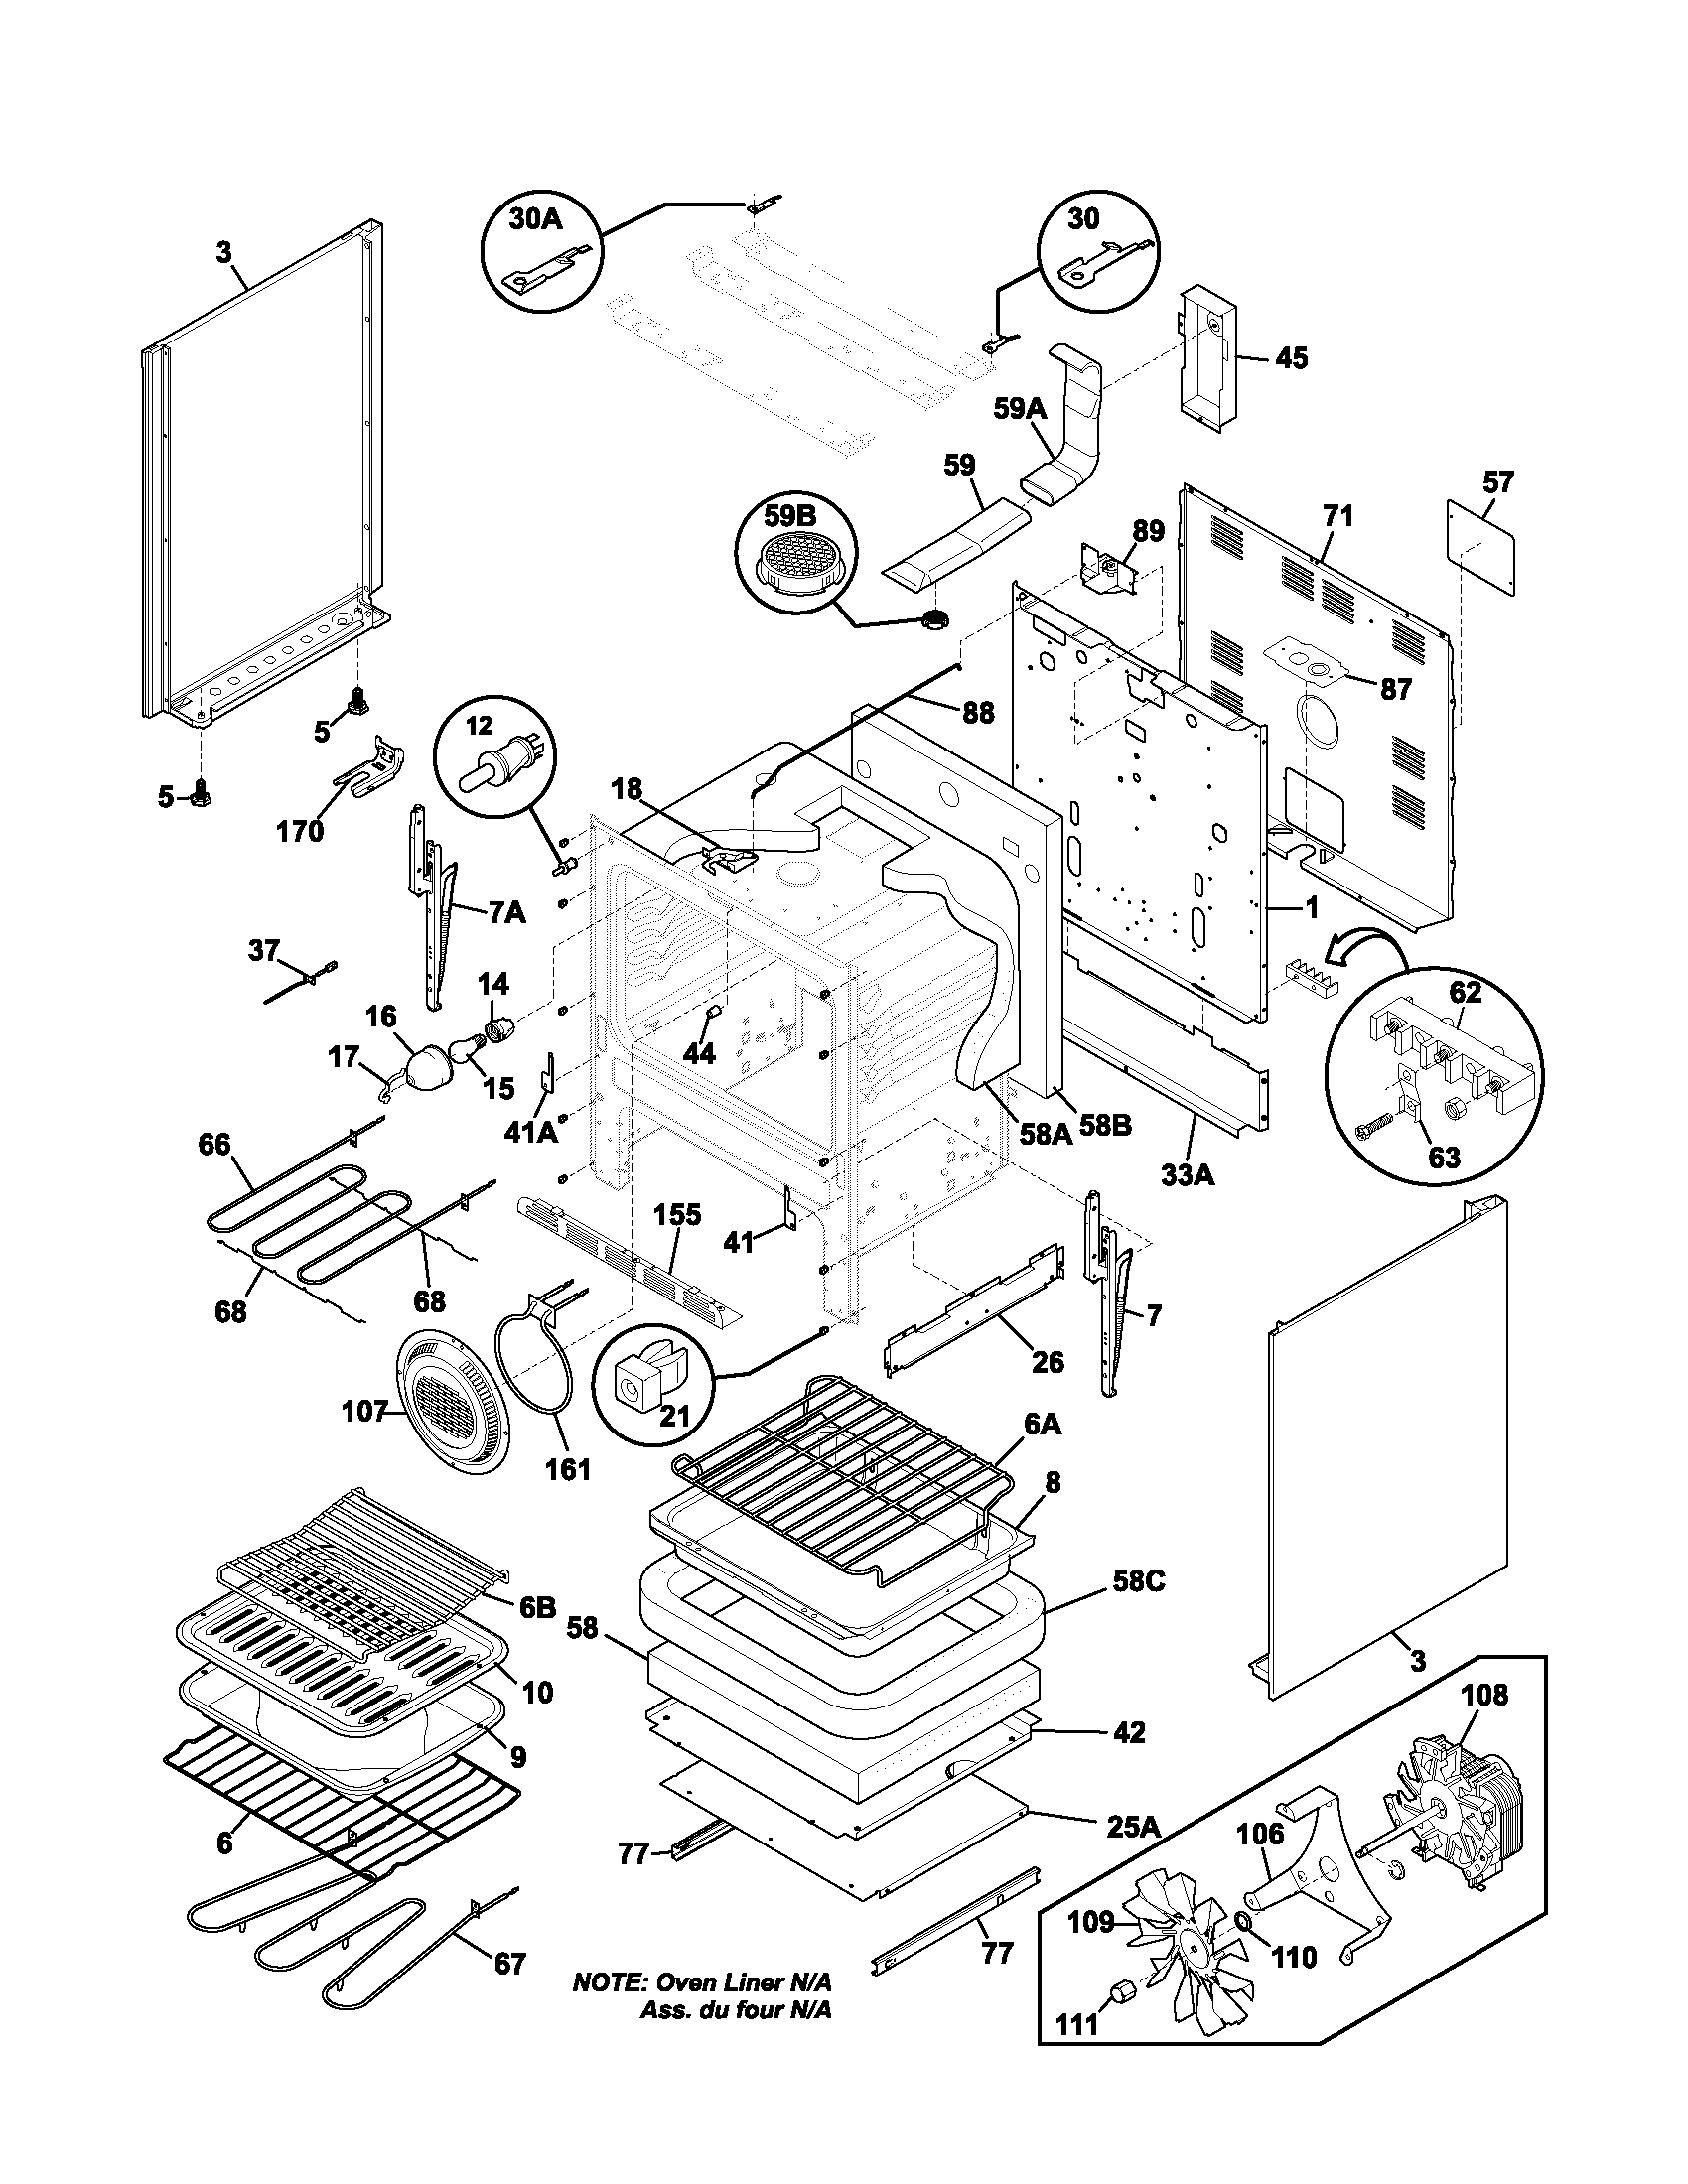 BODY Diagram & Parts List for Model plef398ccb Frigidaire